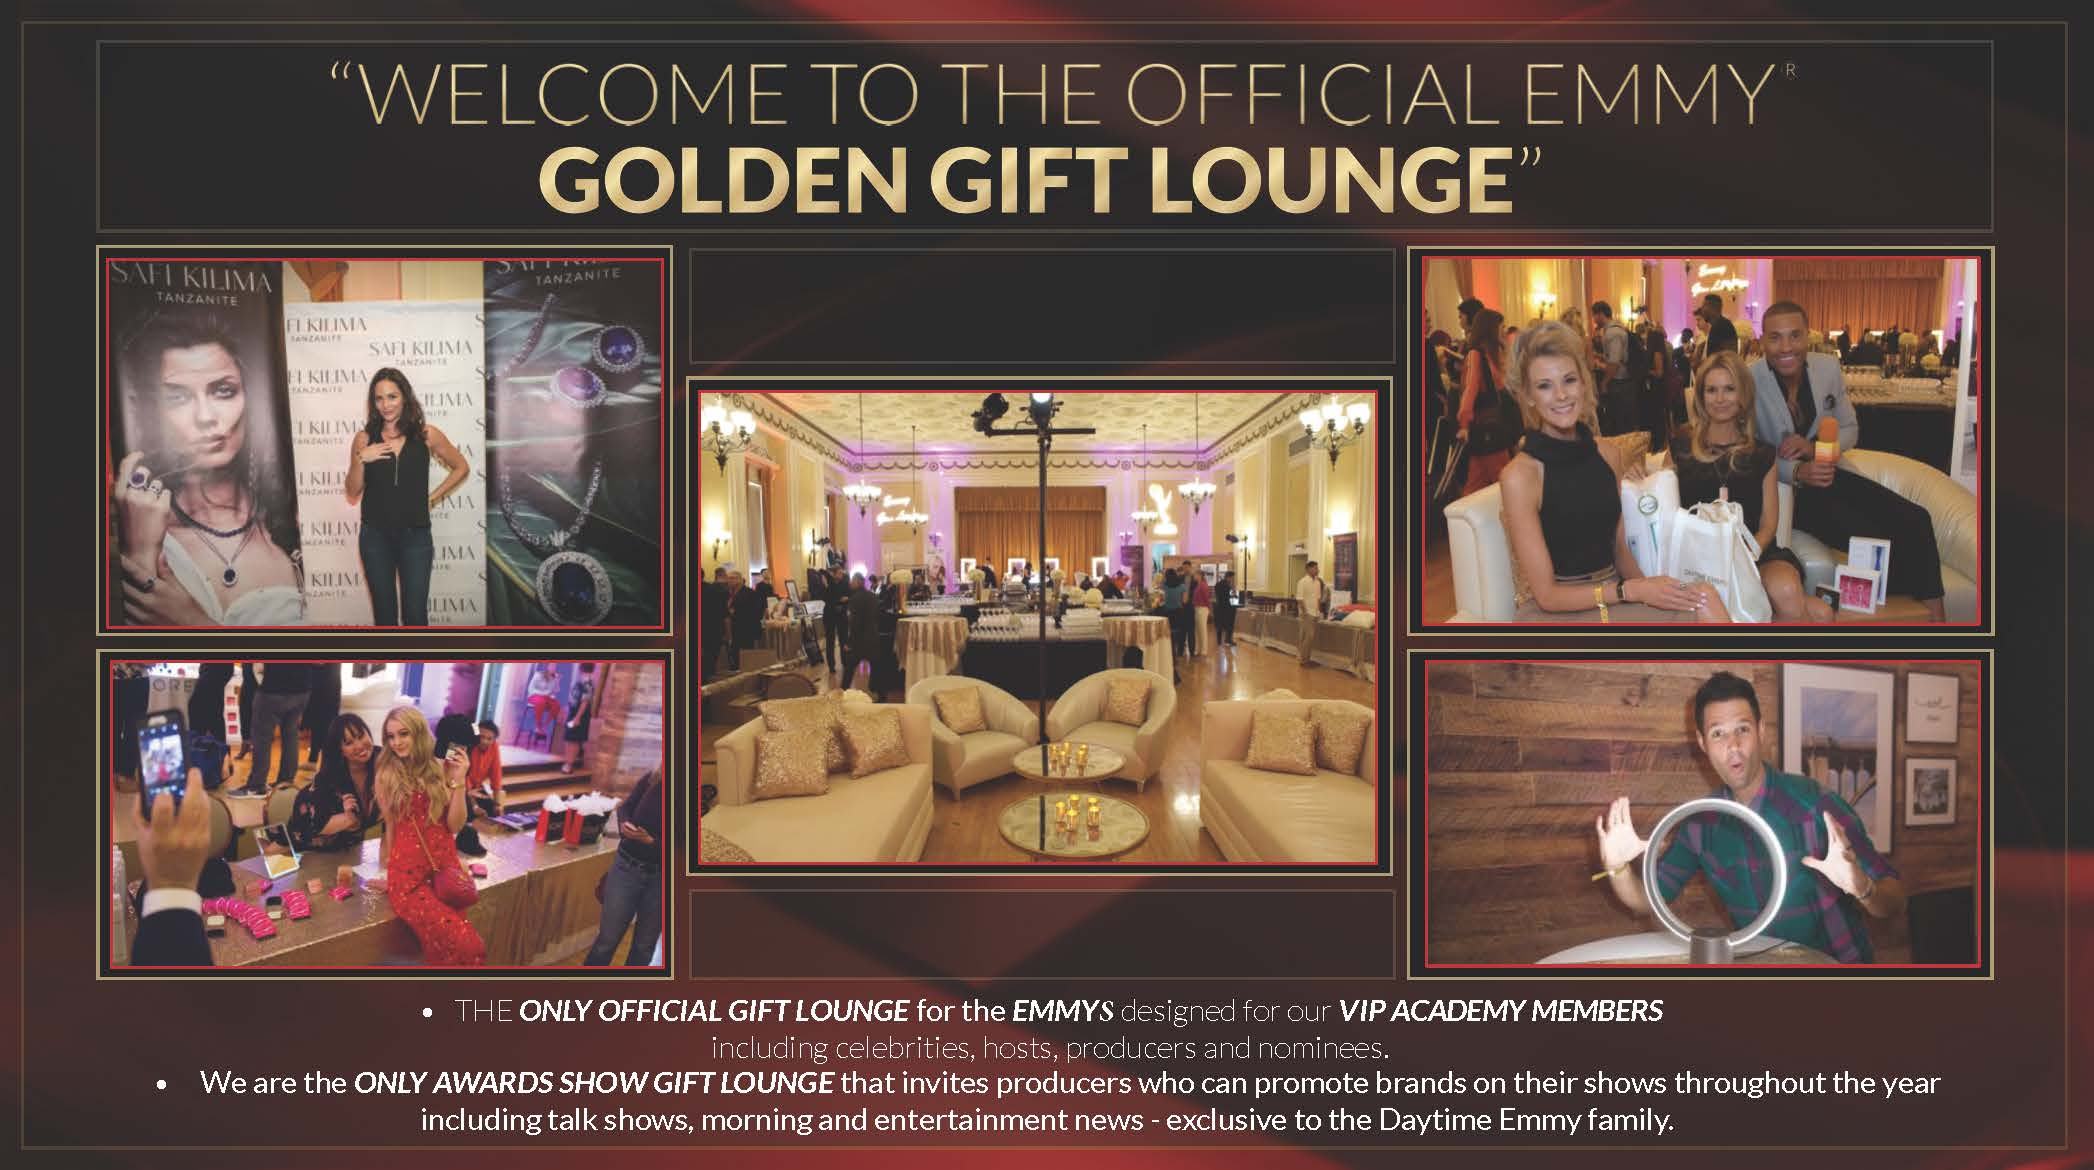 46TH EMMYS AWARDS DECK - GIFT LOUNGE PAGES ONLY_Page_1.jpg